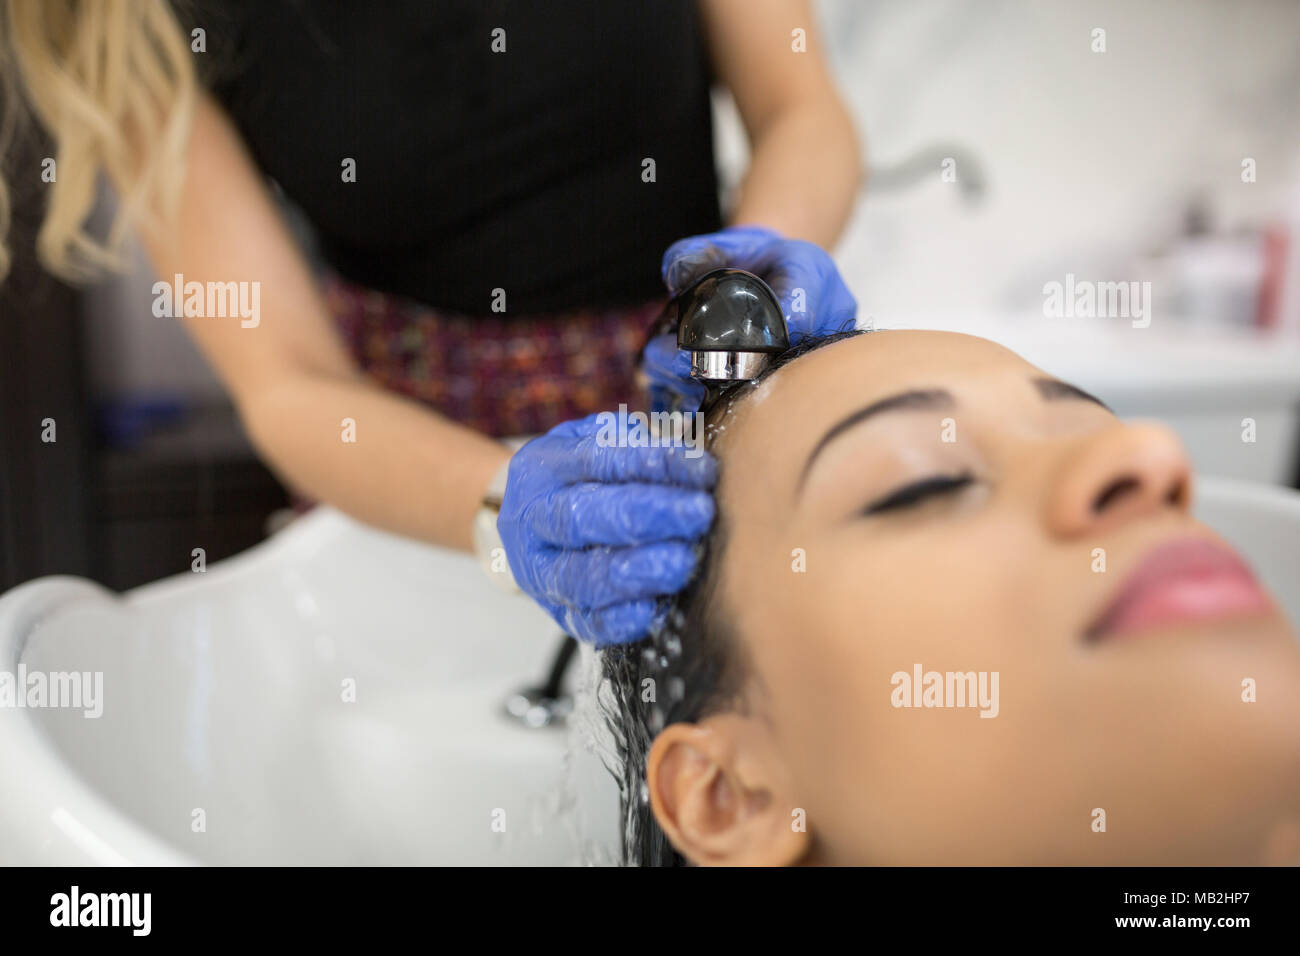 Close up portrait of relaxed woman having hair washed at hairdresser - Stock Image